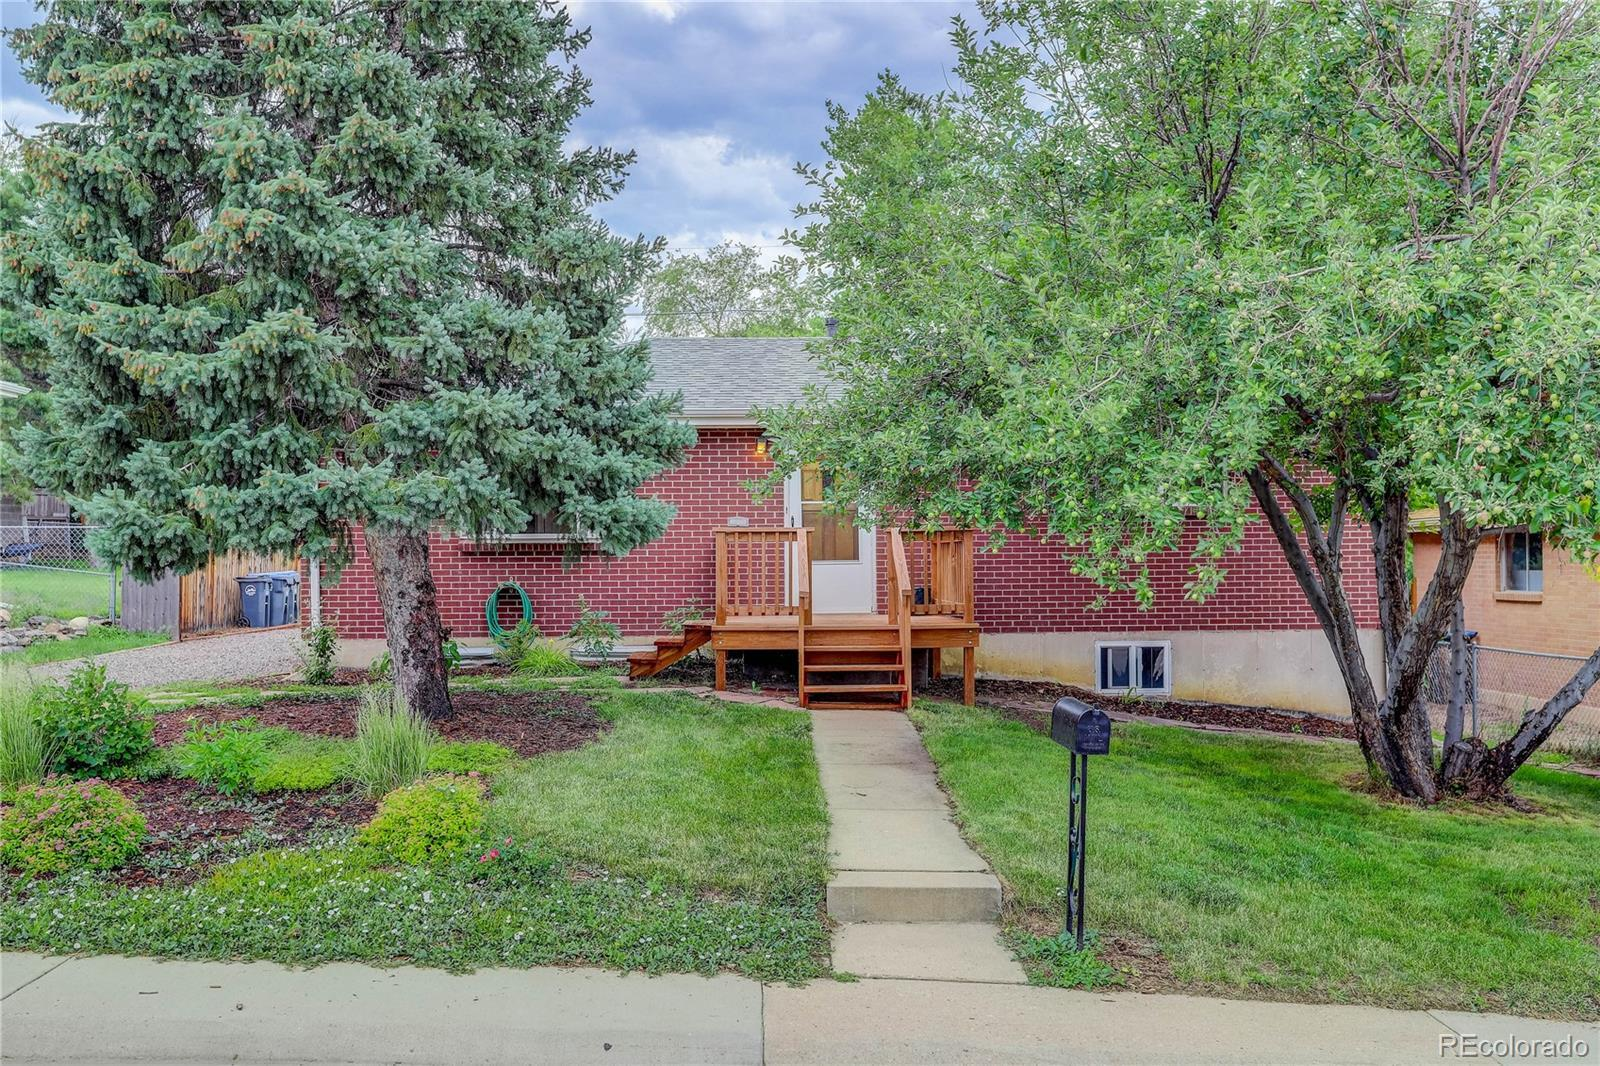 15920 W 3rd Place, Golden, CO 80401 - MLS#: 3111075